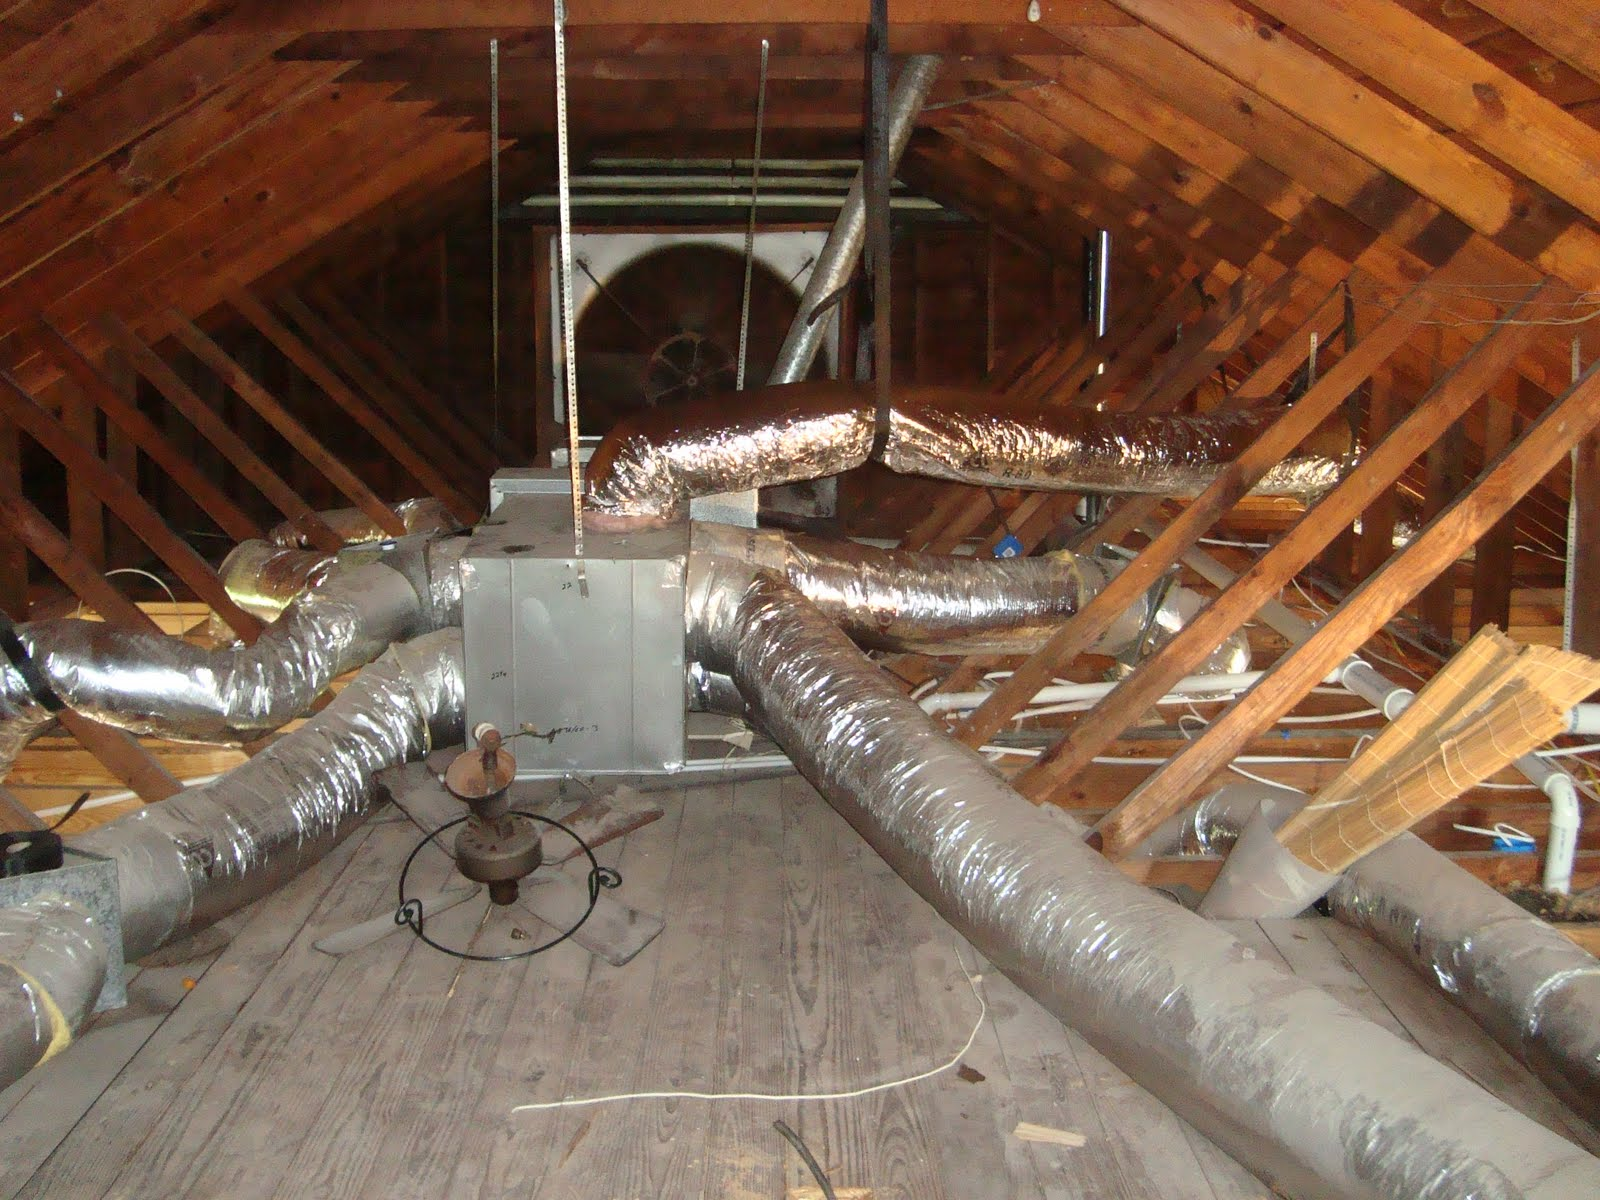 Air Duct System : How to inspect hvac systems course page internachi